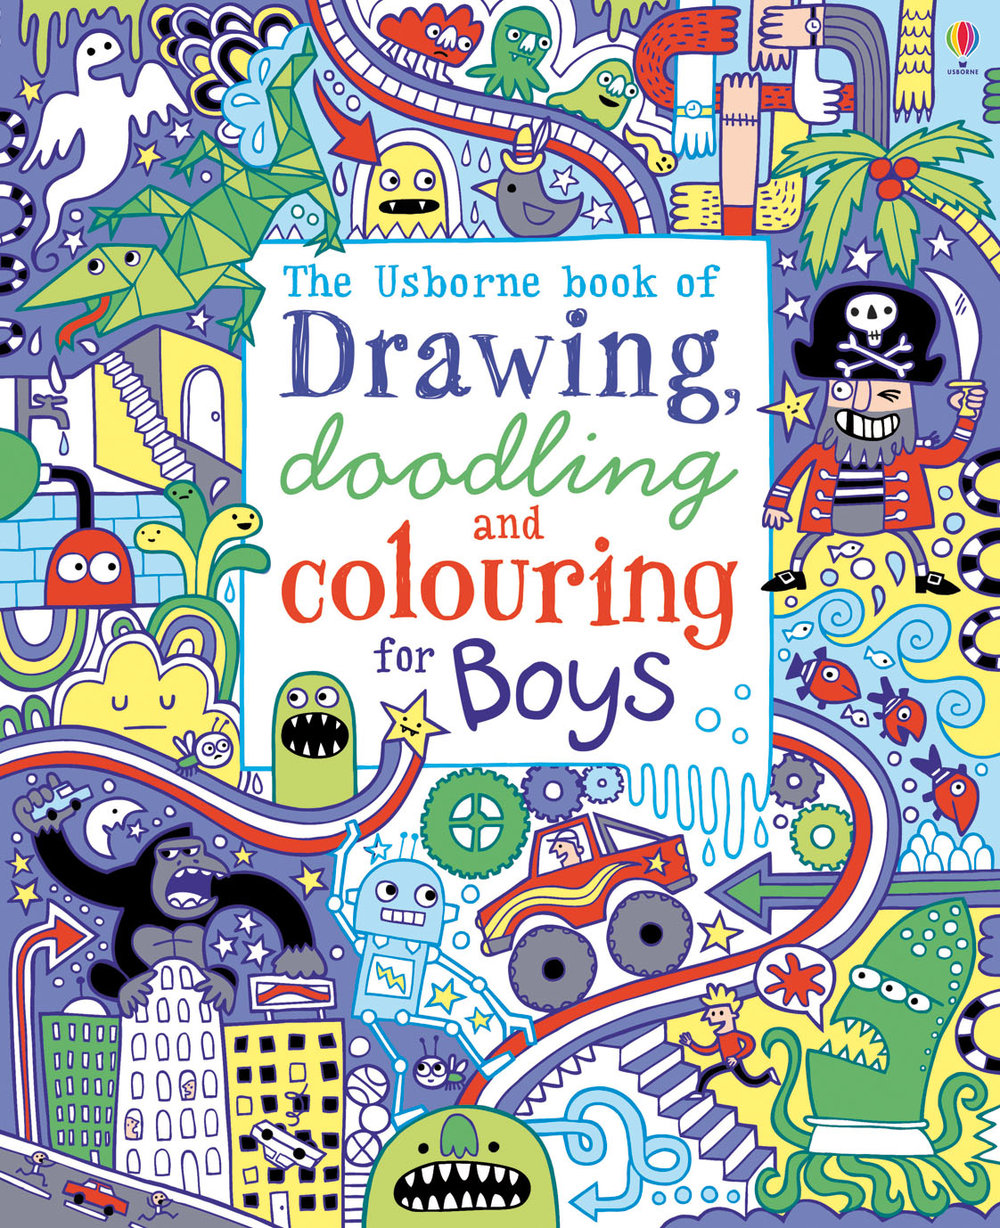 Drawing, doodling and colouring for Boys.jpg